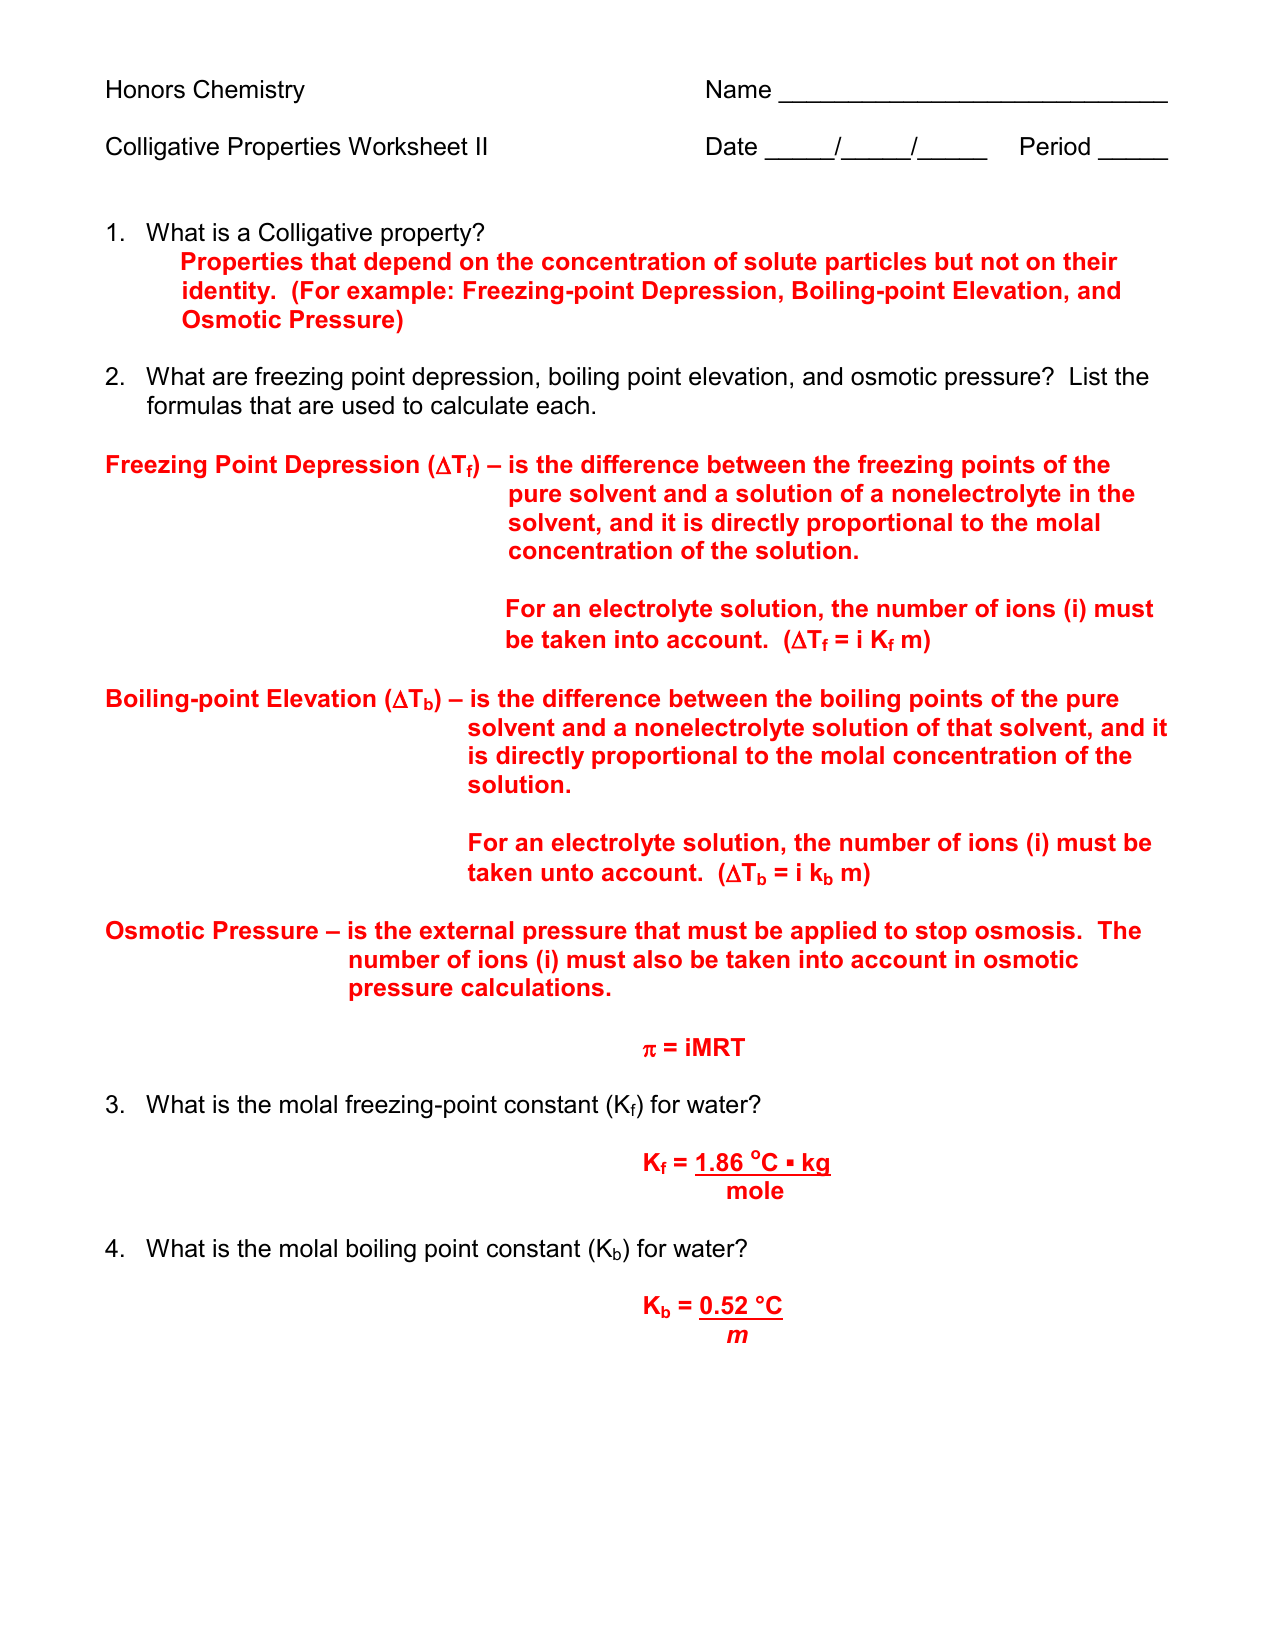 Colligative Properties Worksheet II Answer Key 11-12